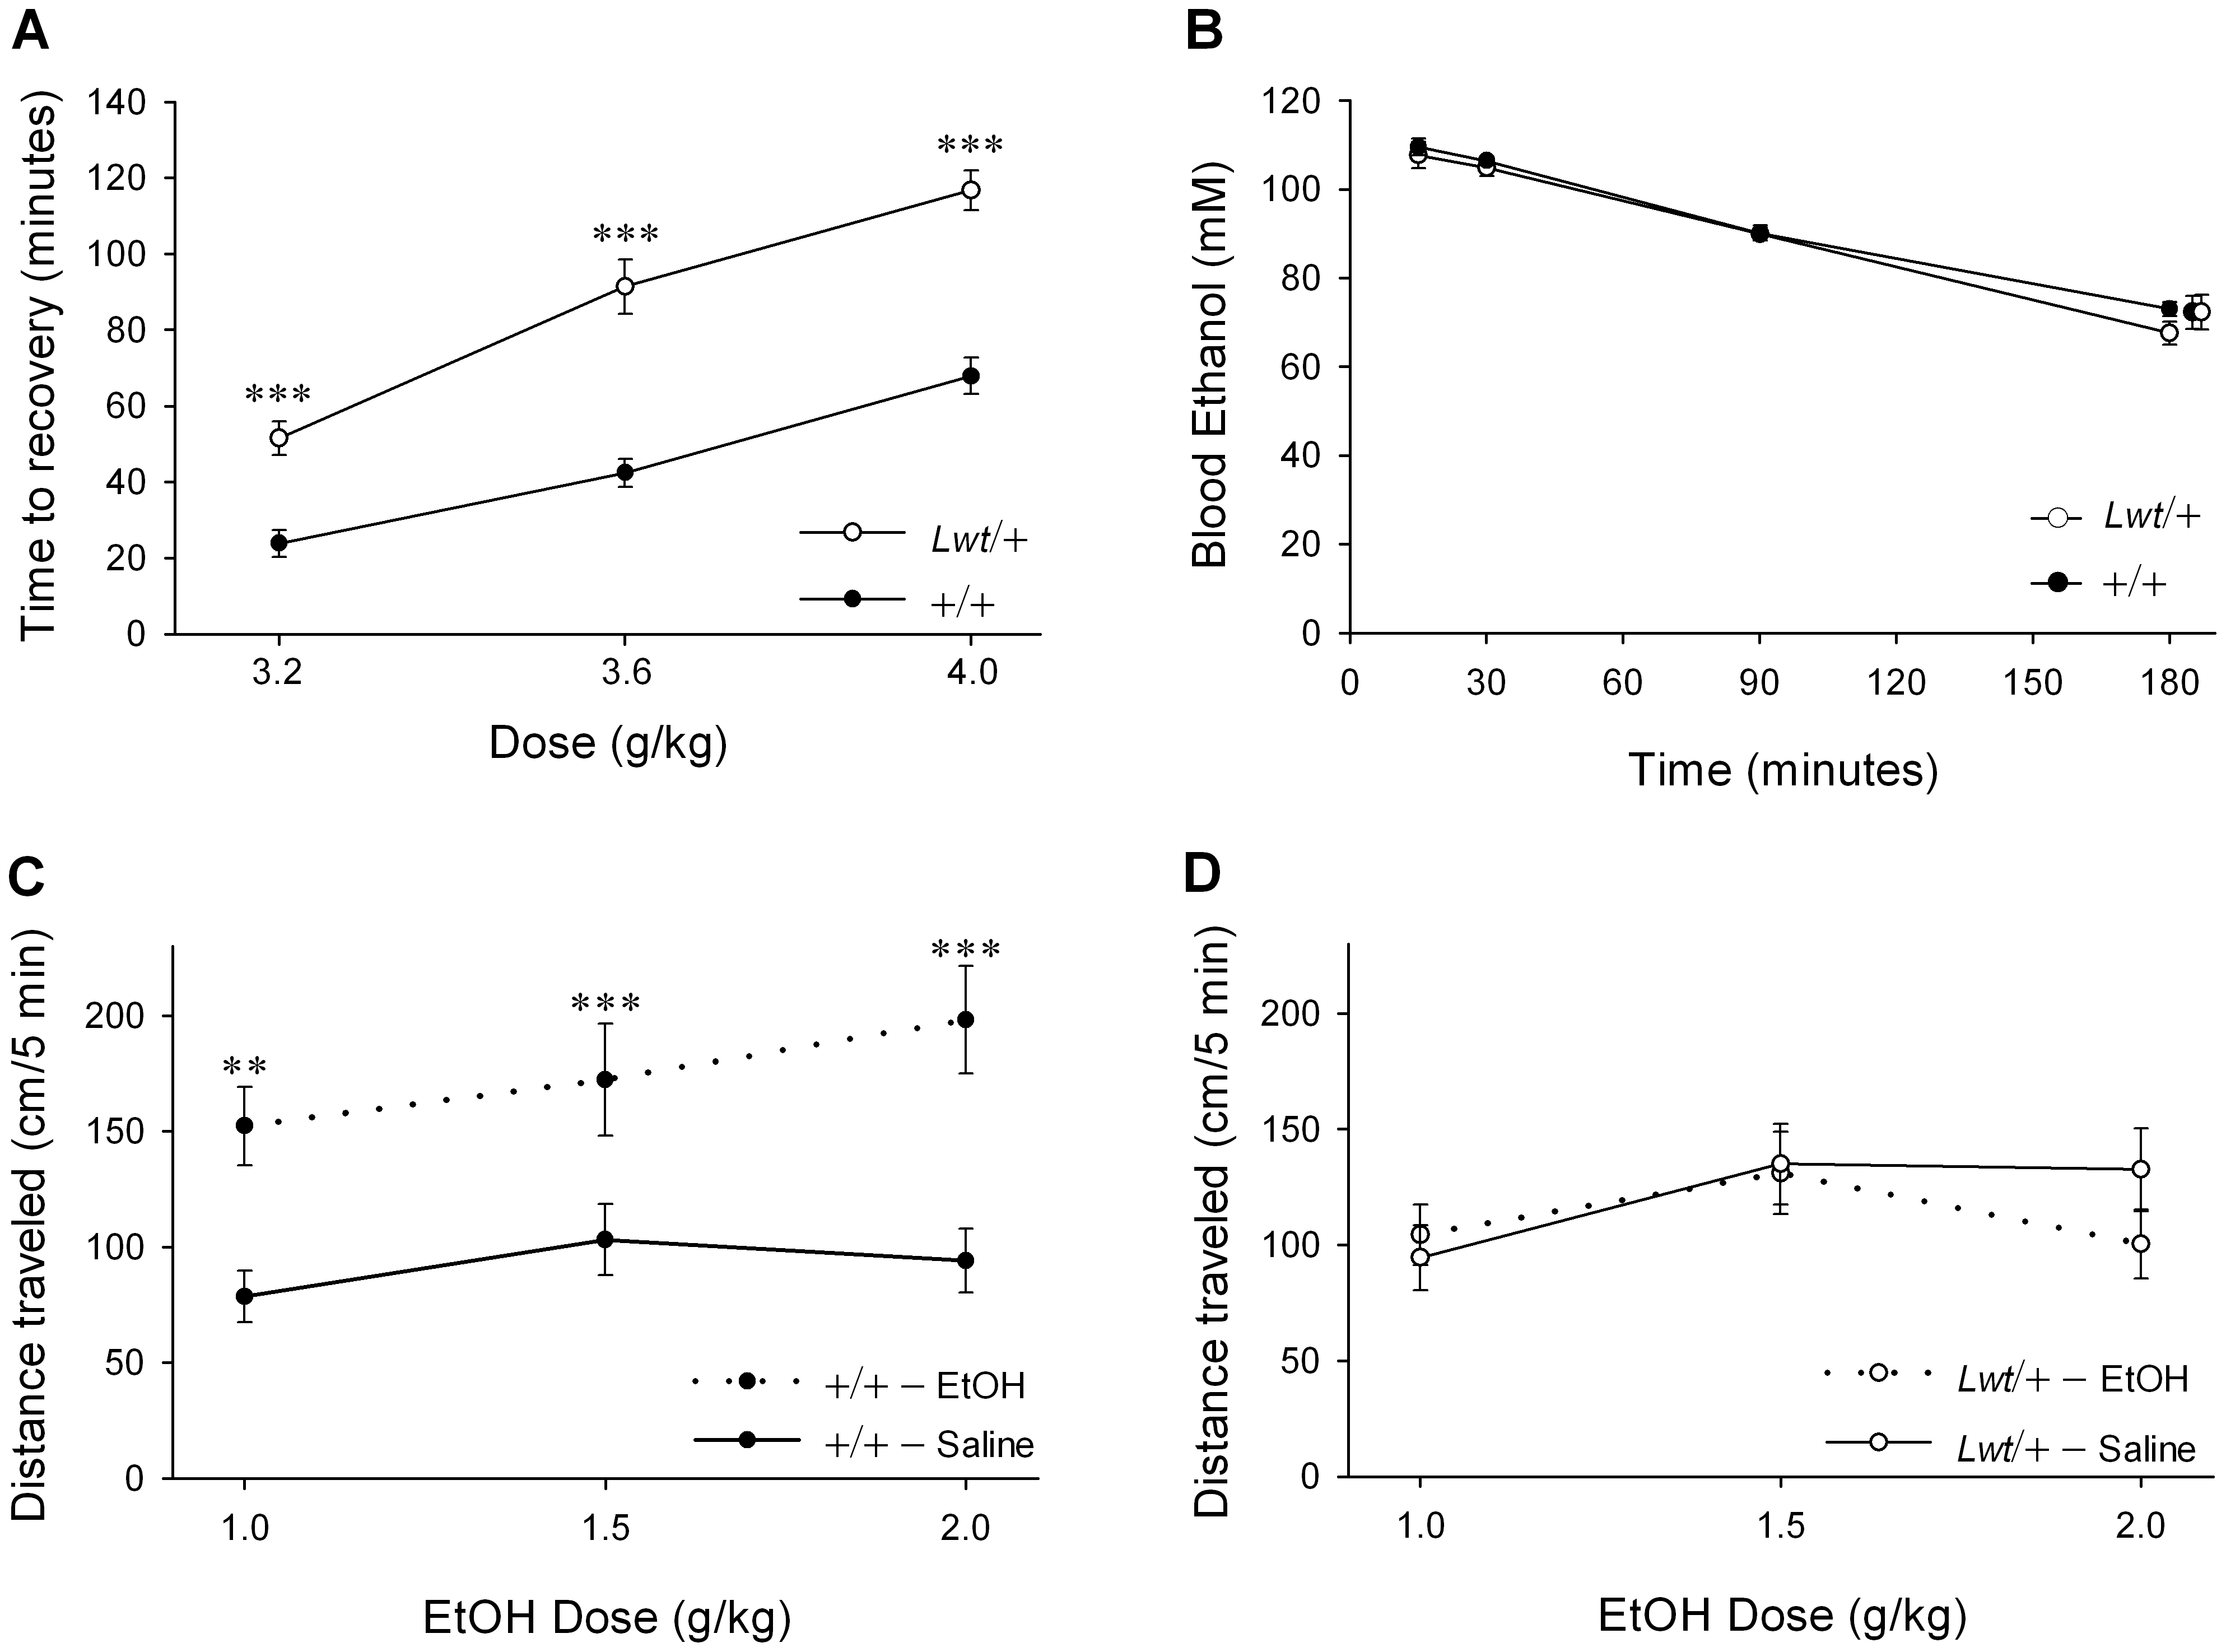 Alterations in acute responses to ethanol in <i>Lwt</i>/+ congenic mice.